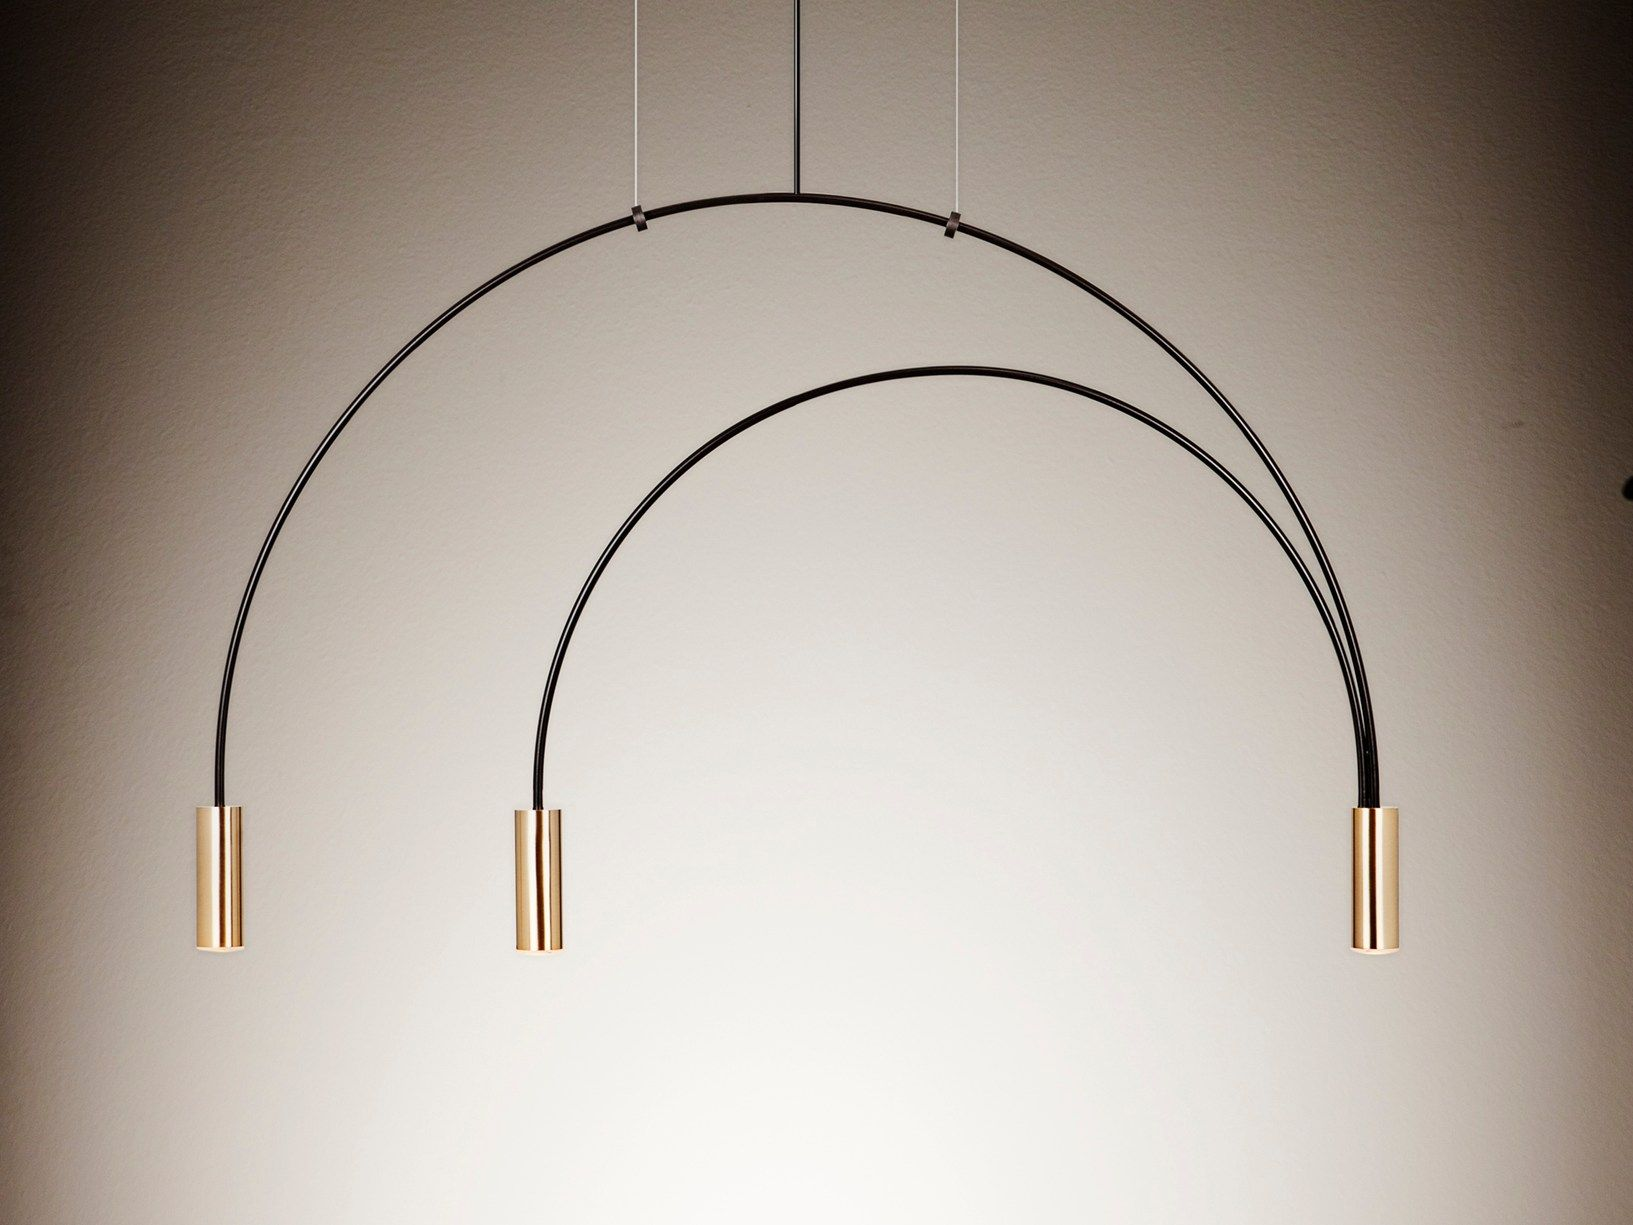 estiluz lighting. Estiluz Lighting. Estiluz, Volta Lighting